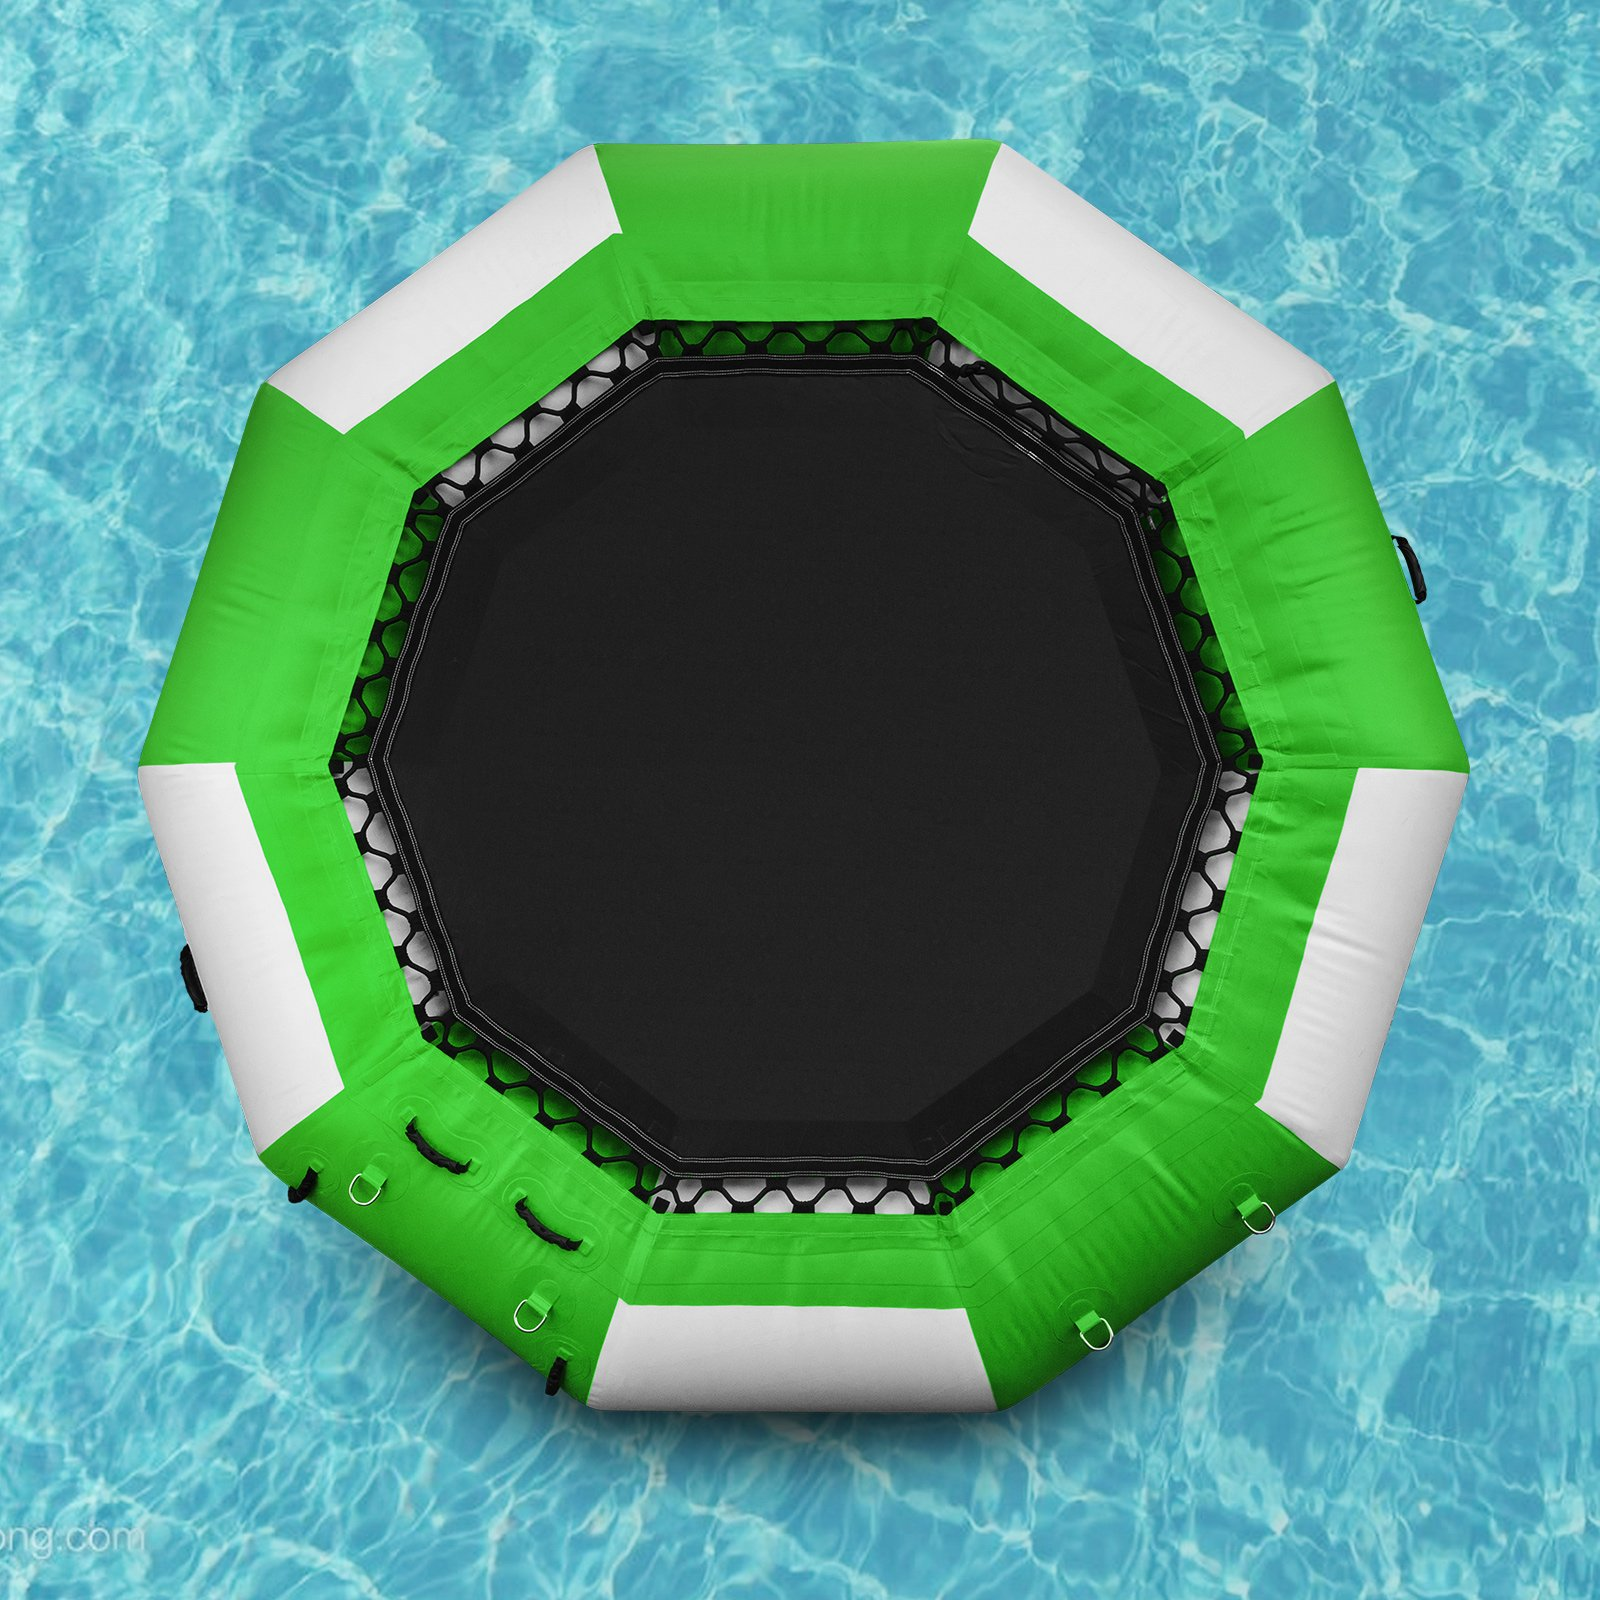 Popsport Inflatable Water Trampoline Series Splash Padded Water Bouncer Inflatable Bouncer Jump Water Trampoline Bounce Swim Platform for Water Sports (Green, 10Ft) by Popsport